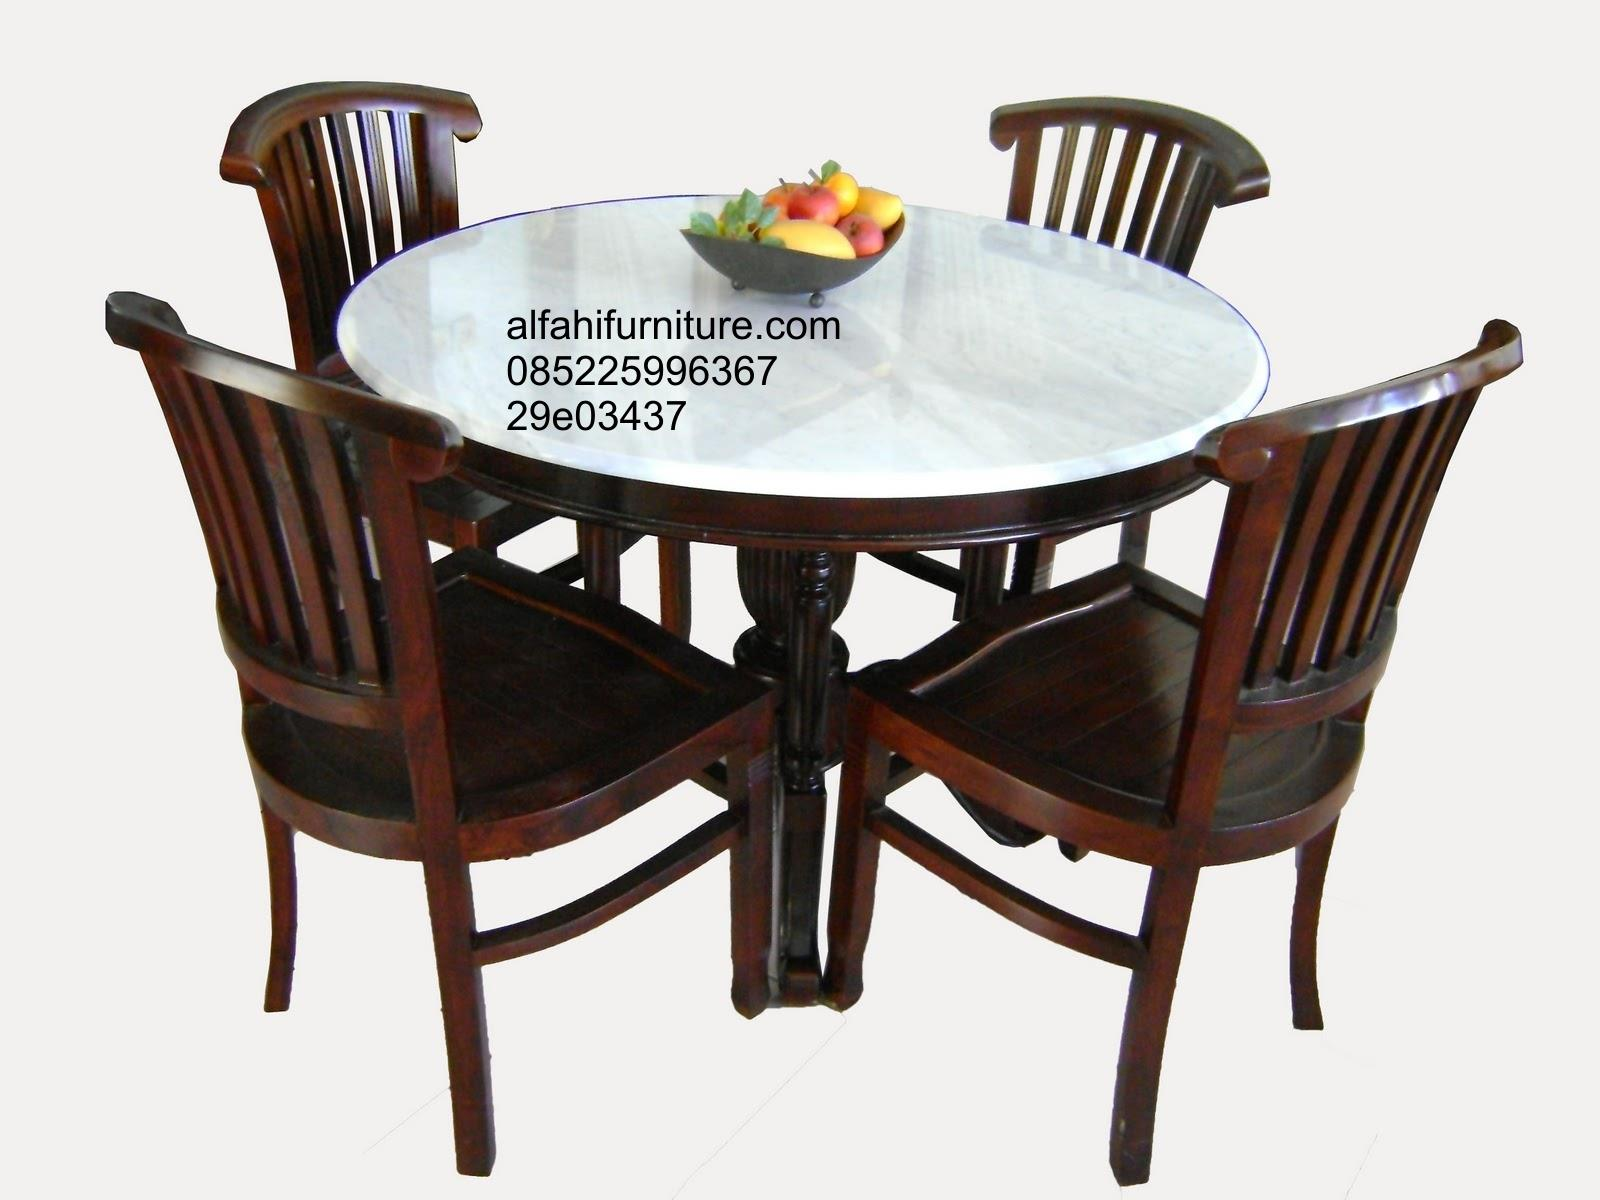 Sell Round Dining Table Set from Indonesia by Alfahi  : 3d229f45 d673 4153 9721 cdb08e321106w from en.indotrading.com size 1600 x 1200 jpeg 132kB